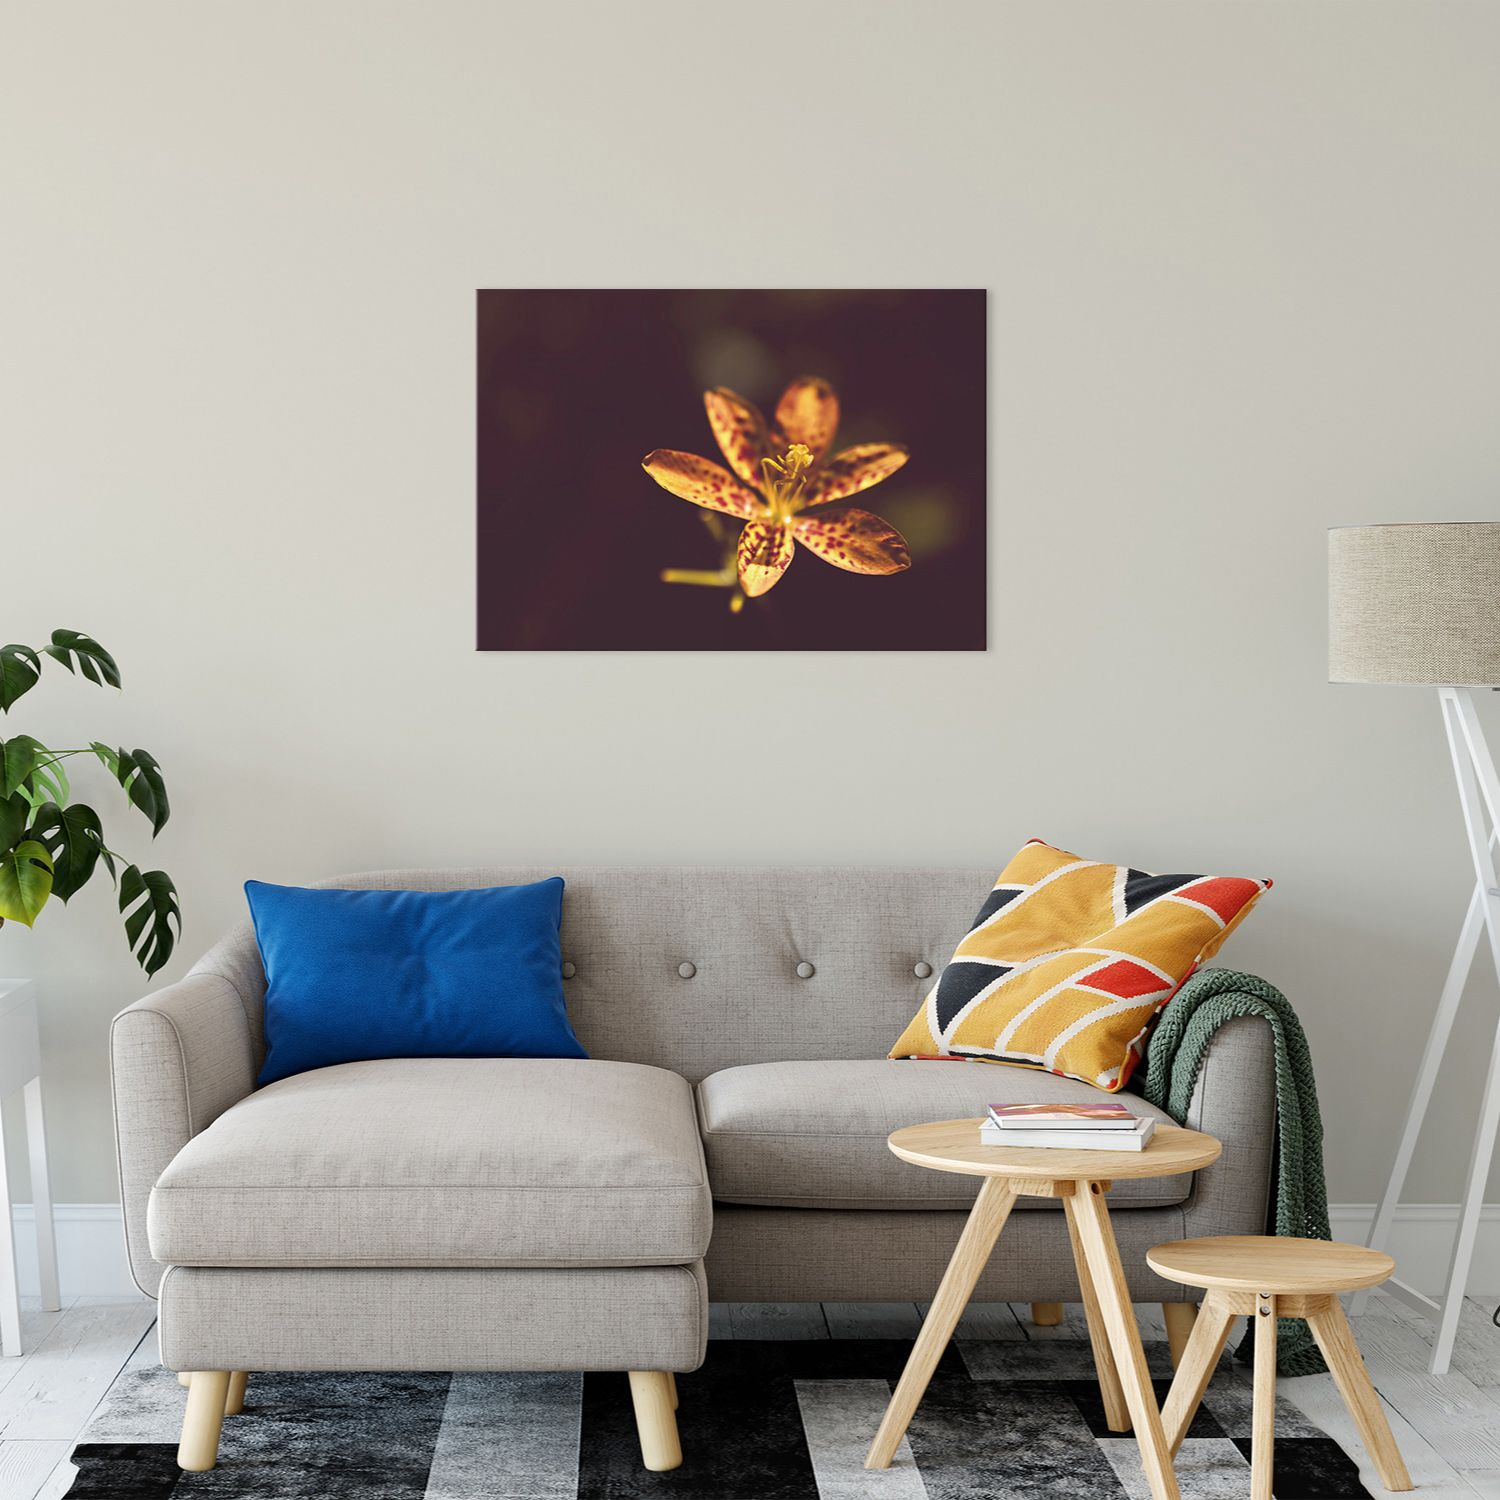 New - Floral Nature Photography - Dramatic Orange Leopard Lily Flower Wall Art Prints Unframed and Fine Art Canvas Prints